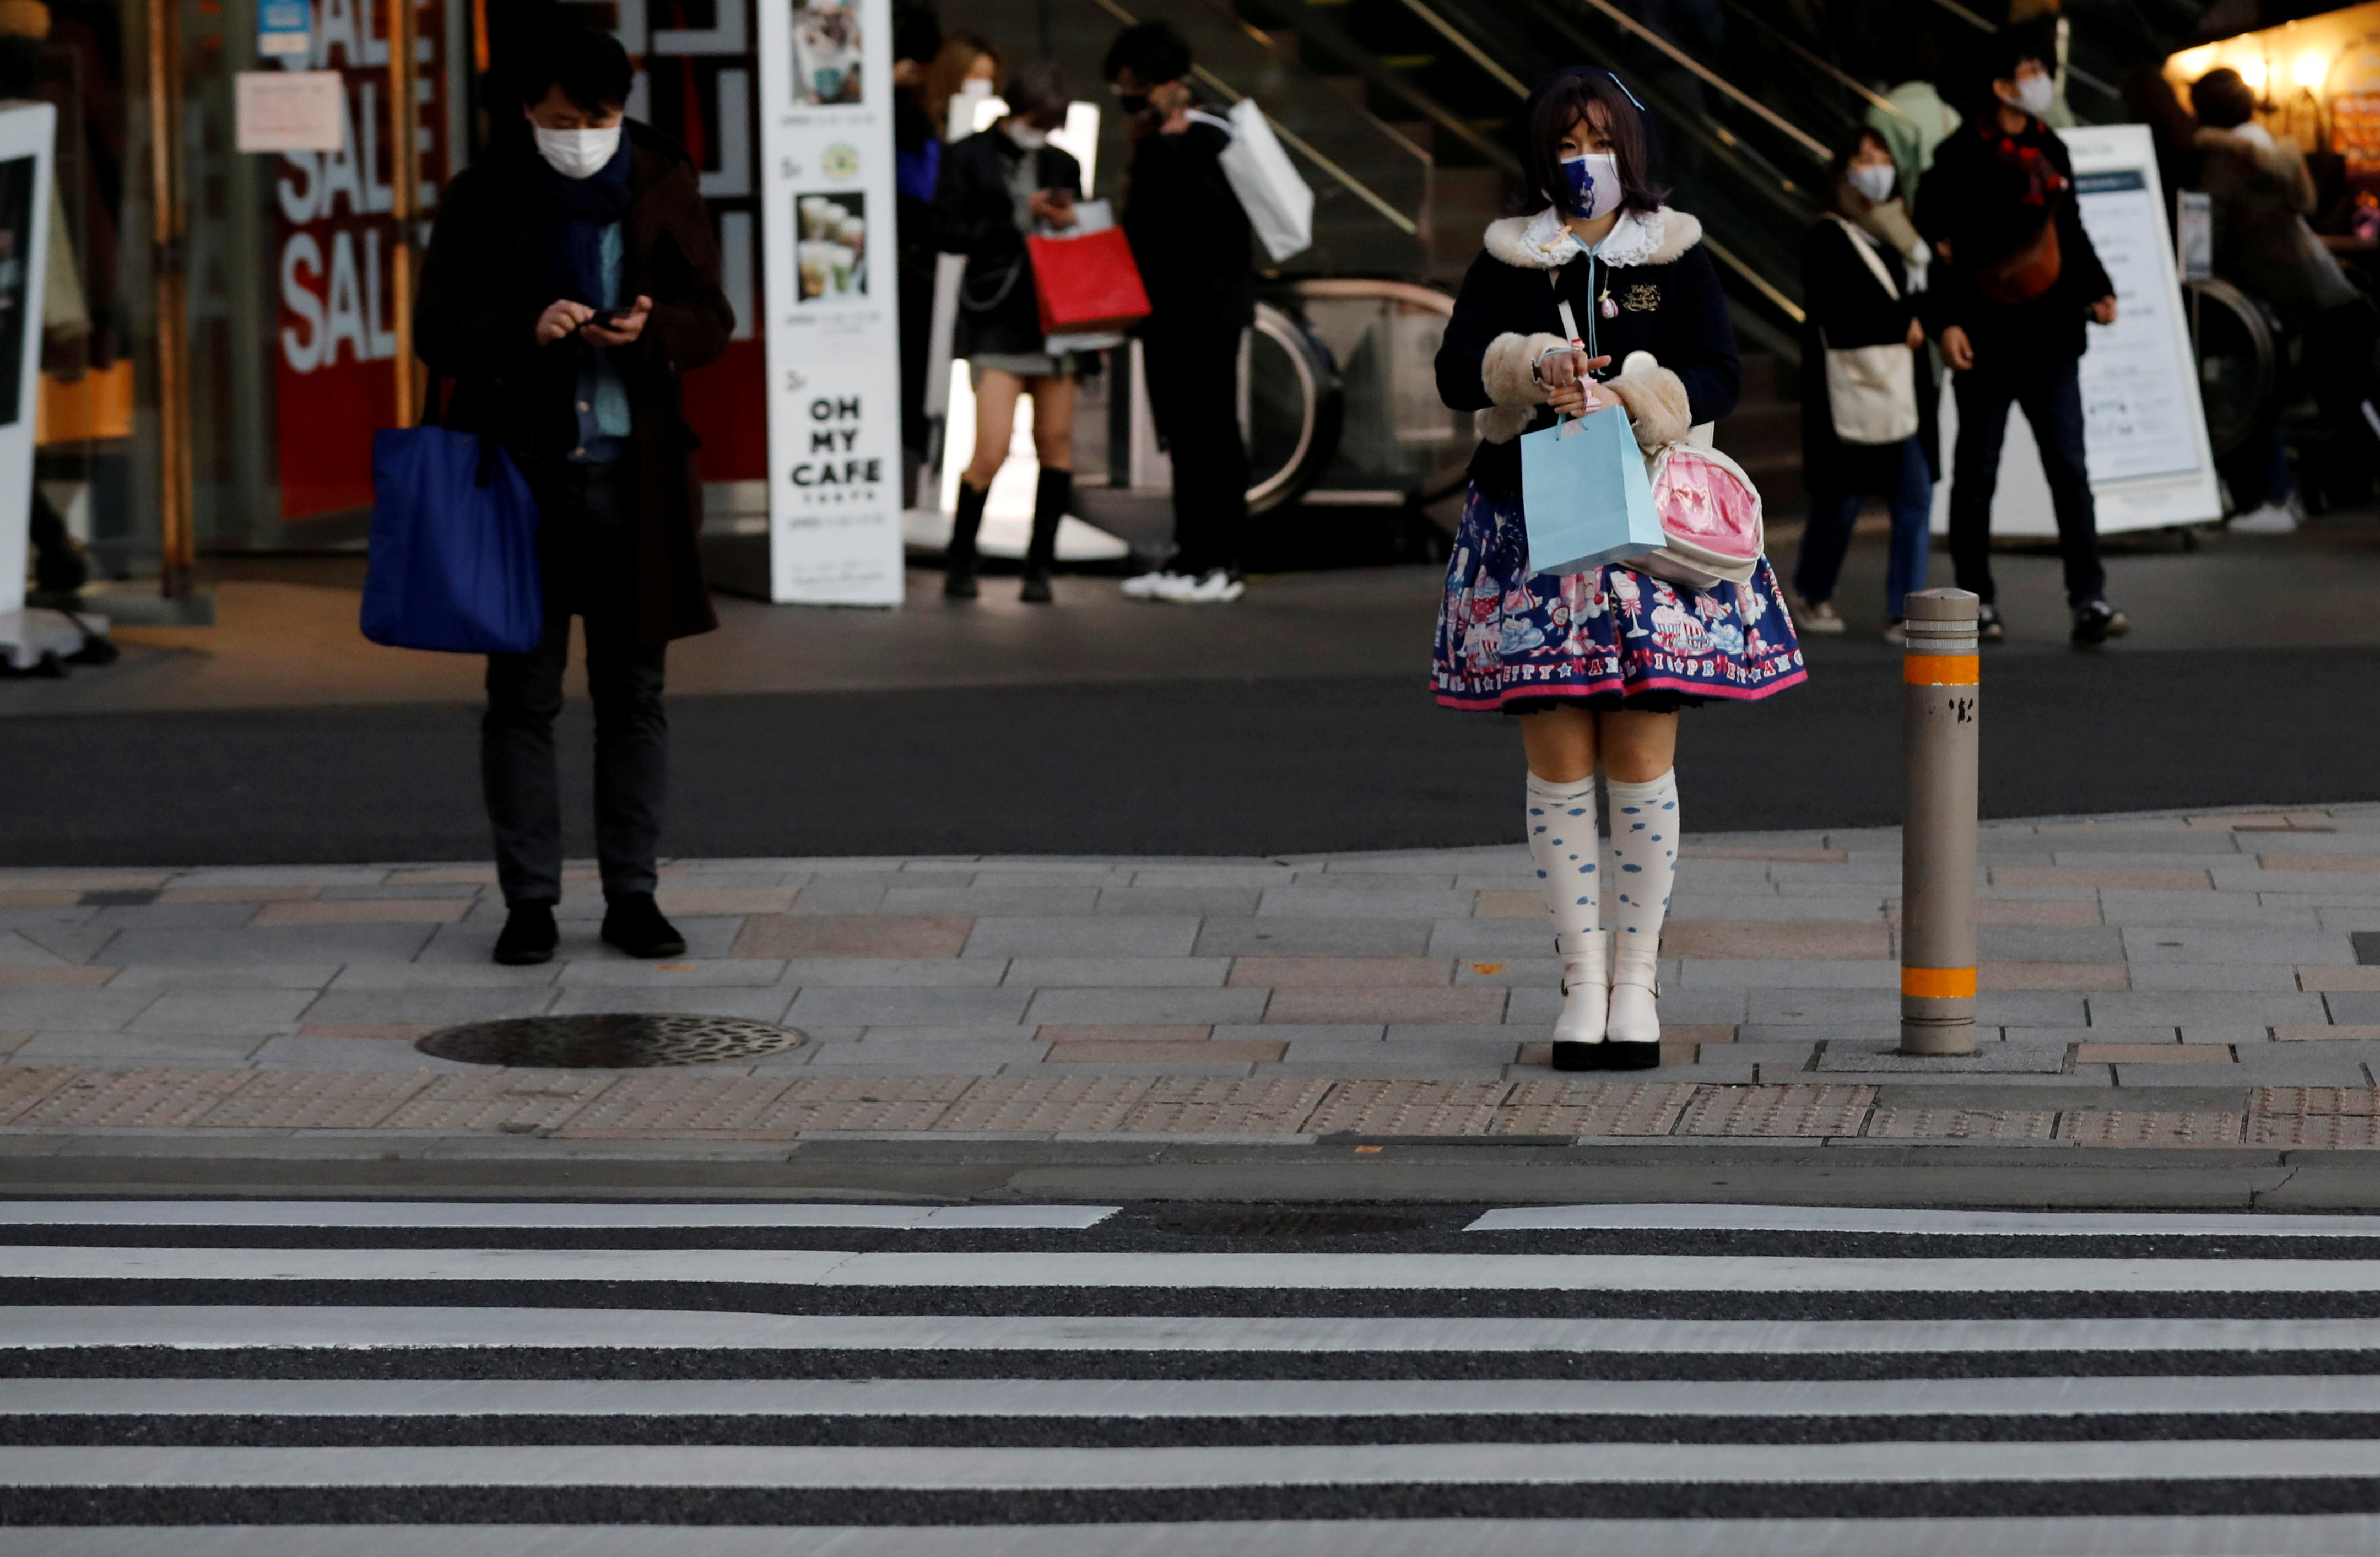 Pedestrians wearing protective masks amid the coronavirus disease (COVID-19) outbreak stand in front of a cross walk at a shopping district in Tokyo, Japan, December 17, 2020. REUTERS/Kim Kyung-Hoon